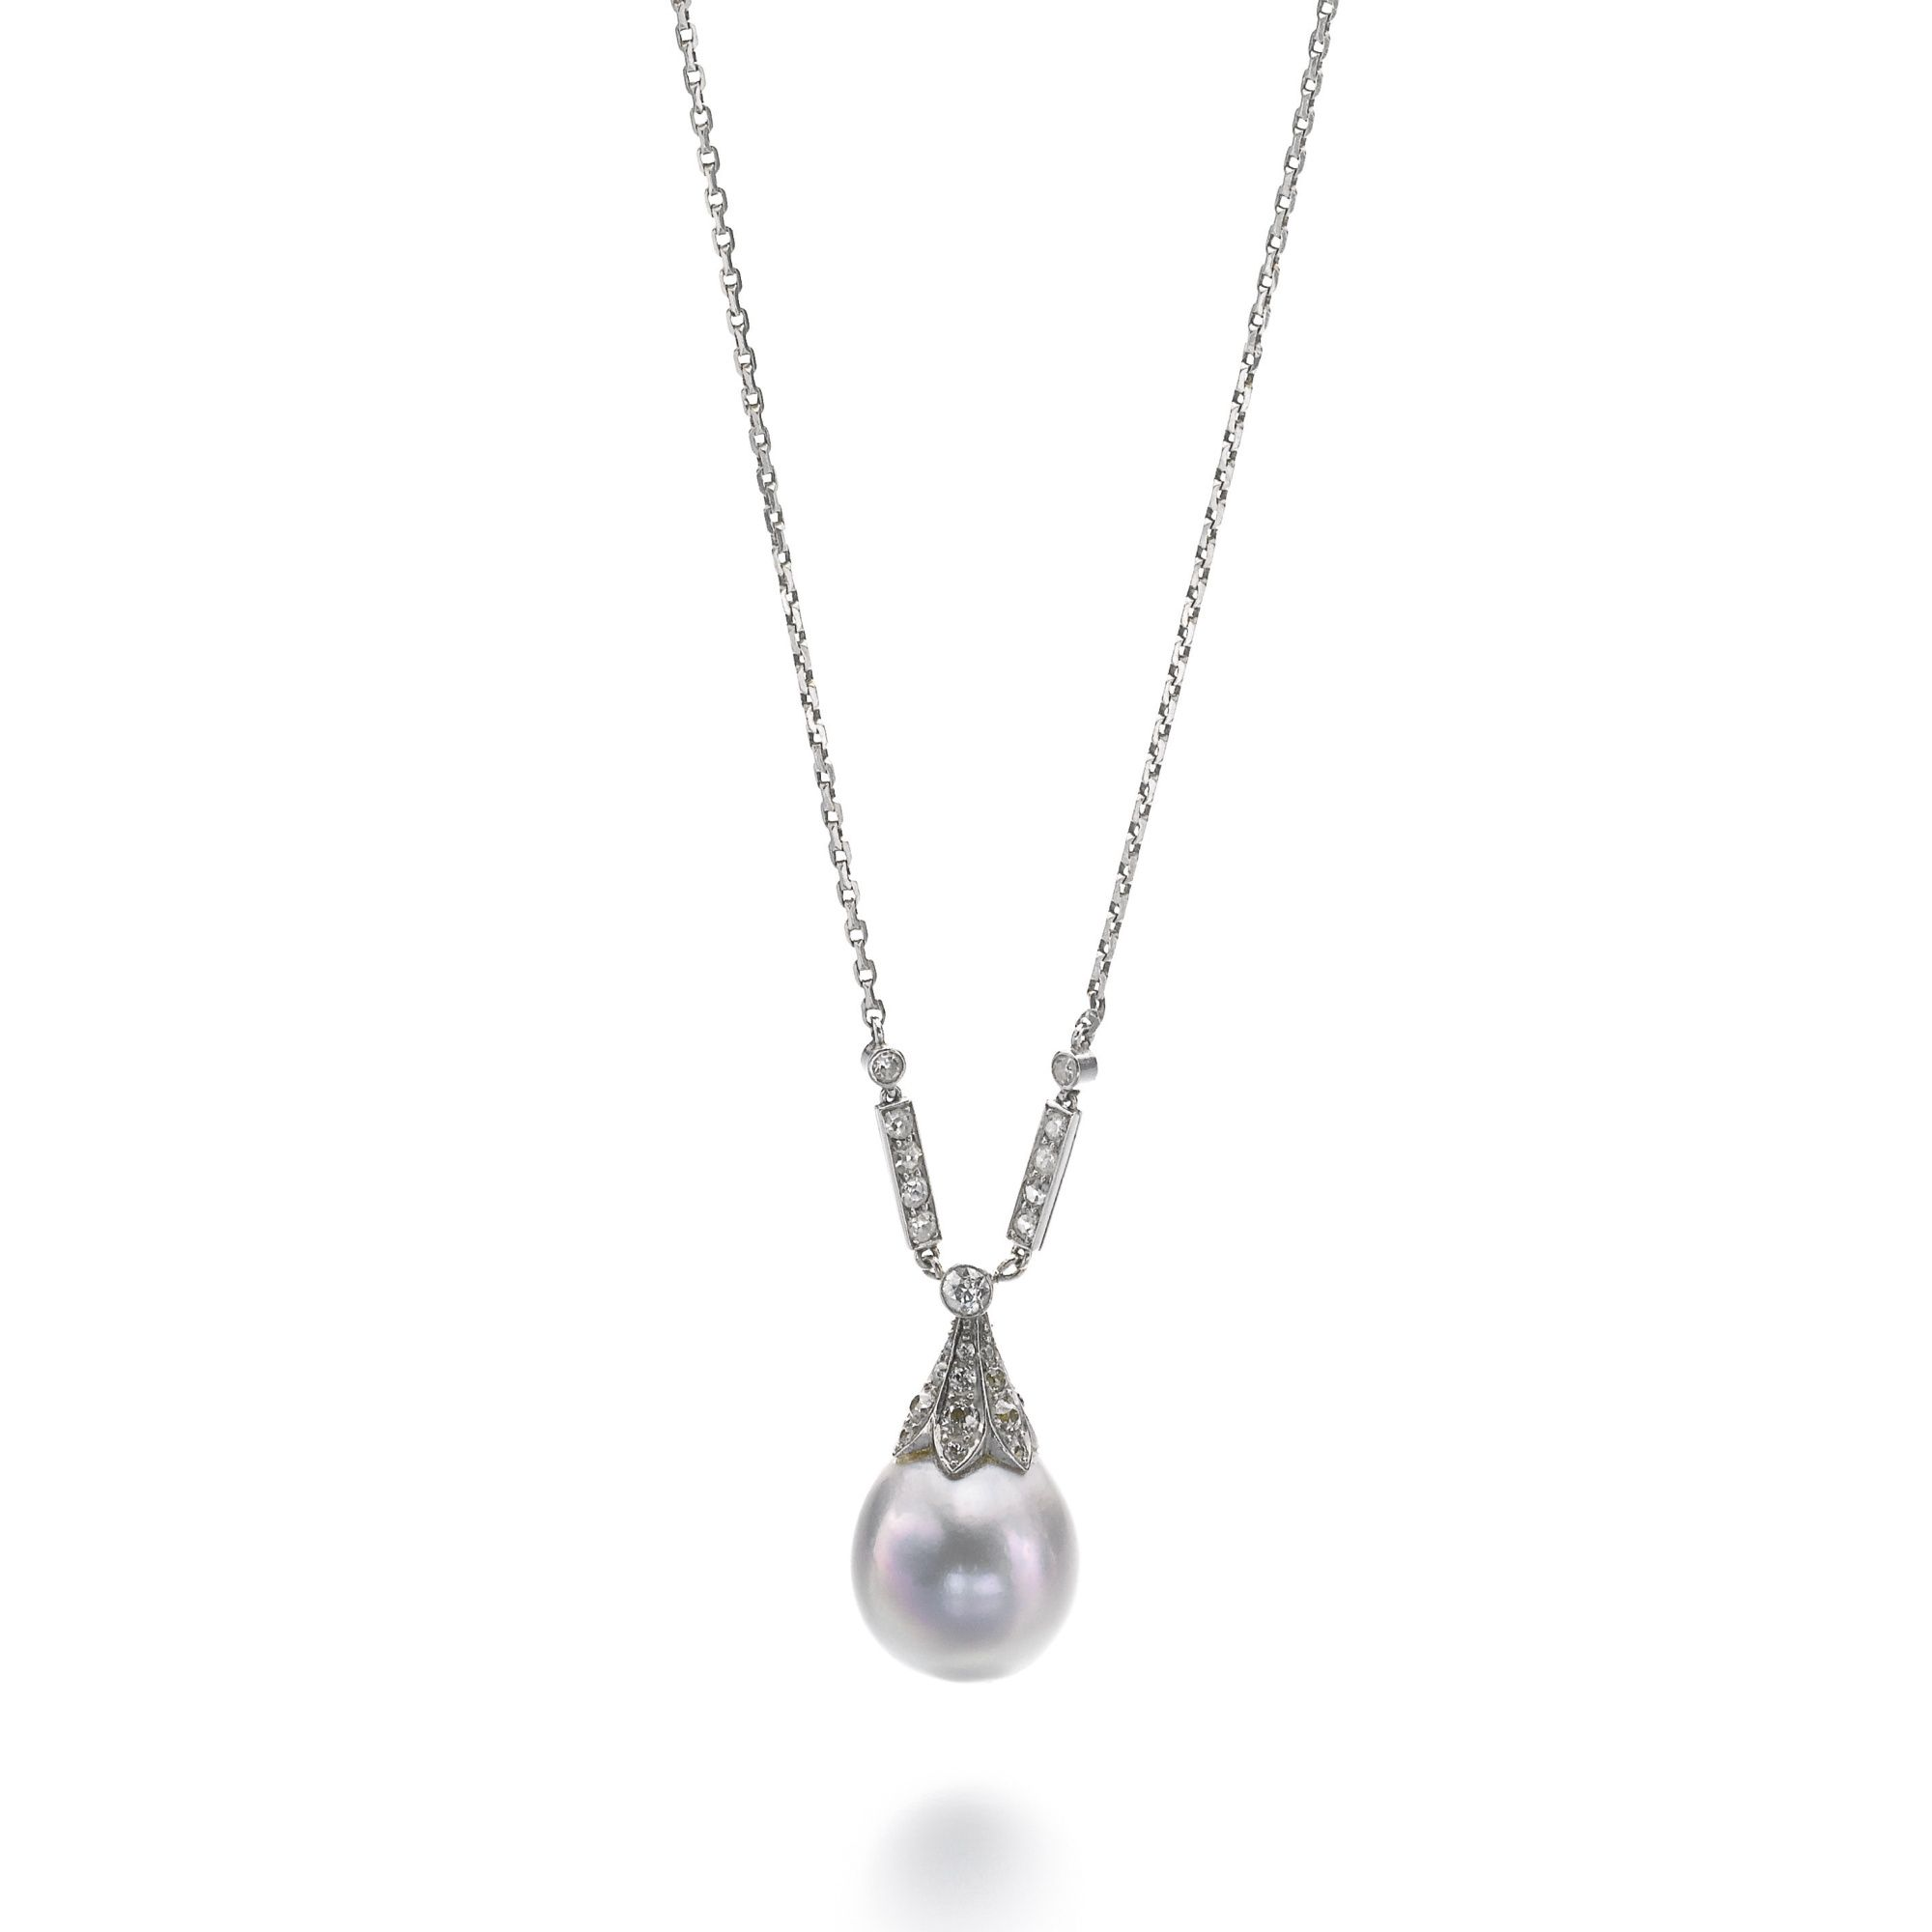 chain listing necklaces pearl fullxfull galatea silver il rose necklace rope sterling on pendant single